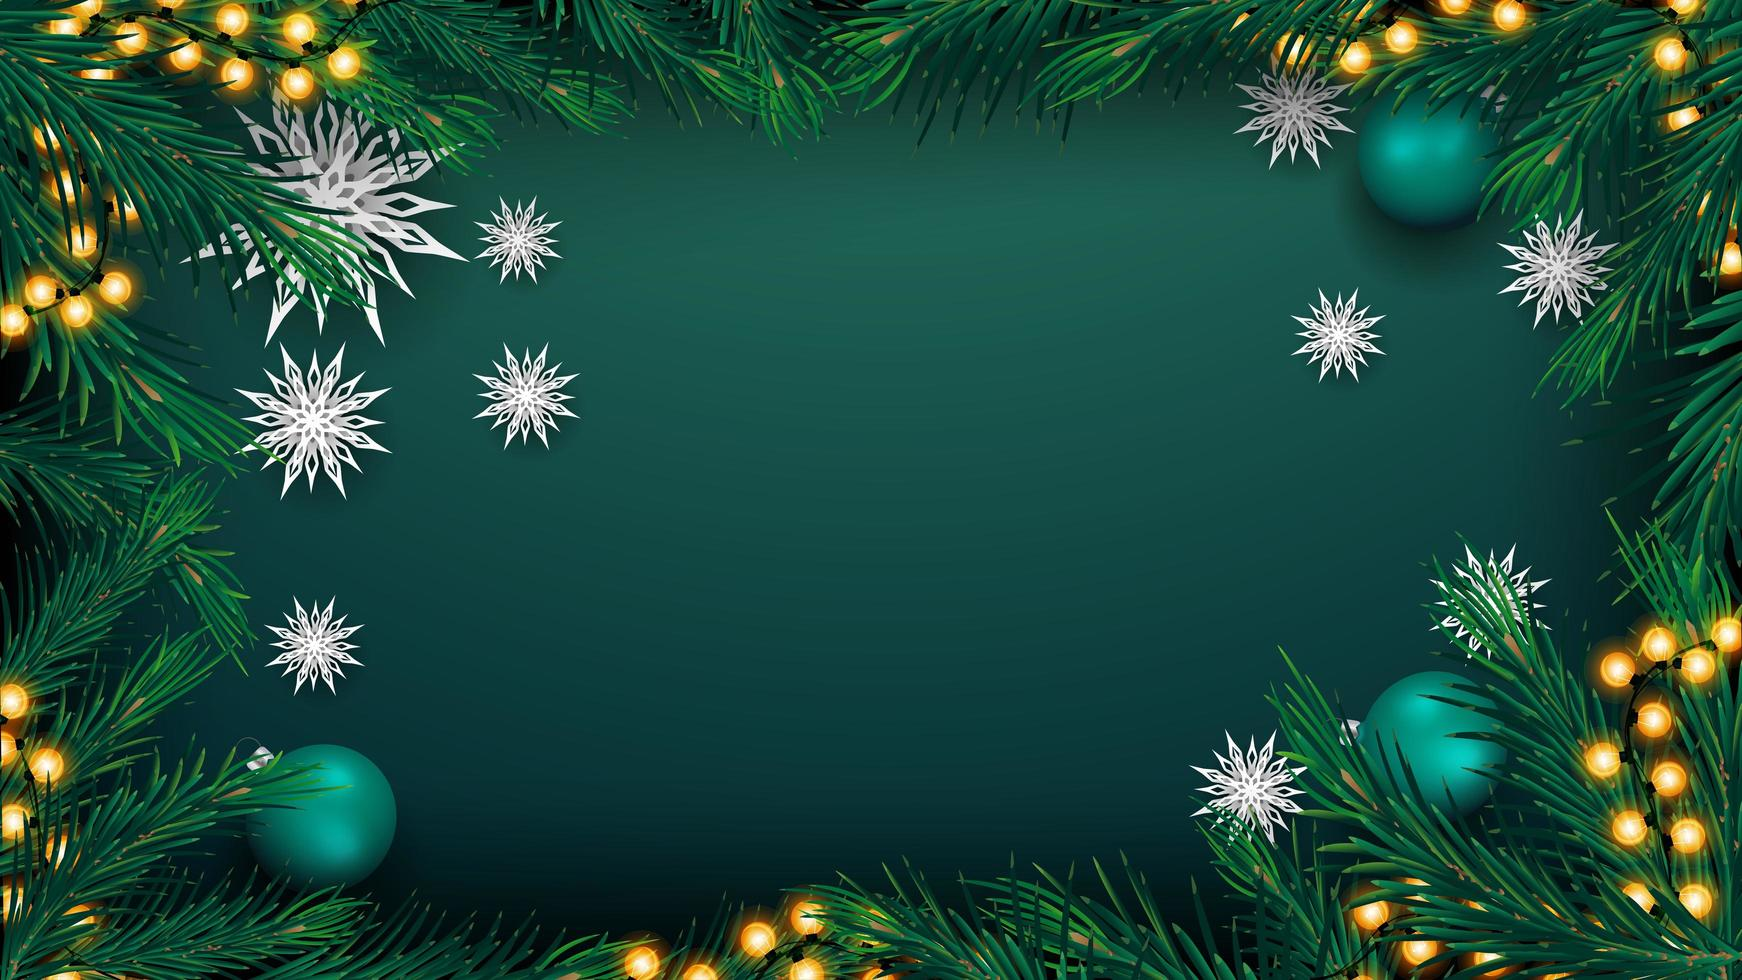 Christmas green background with garland and tree branches vector